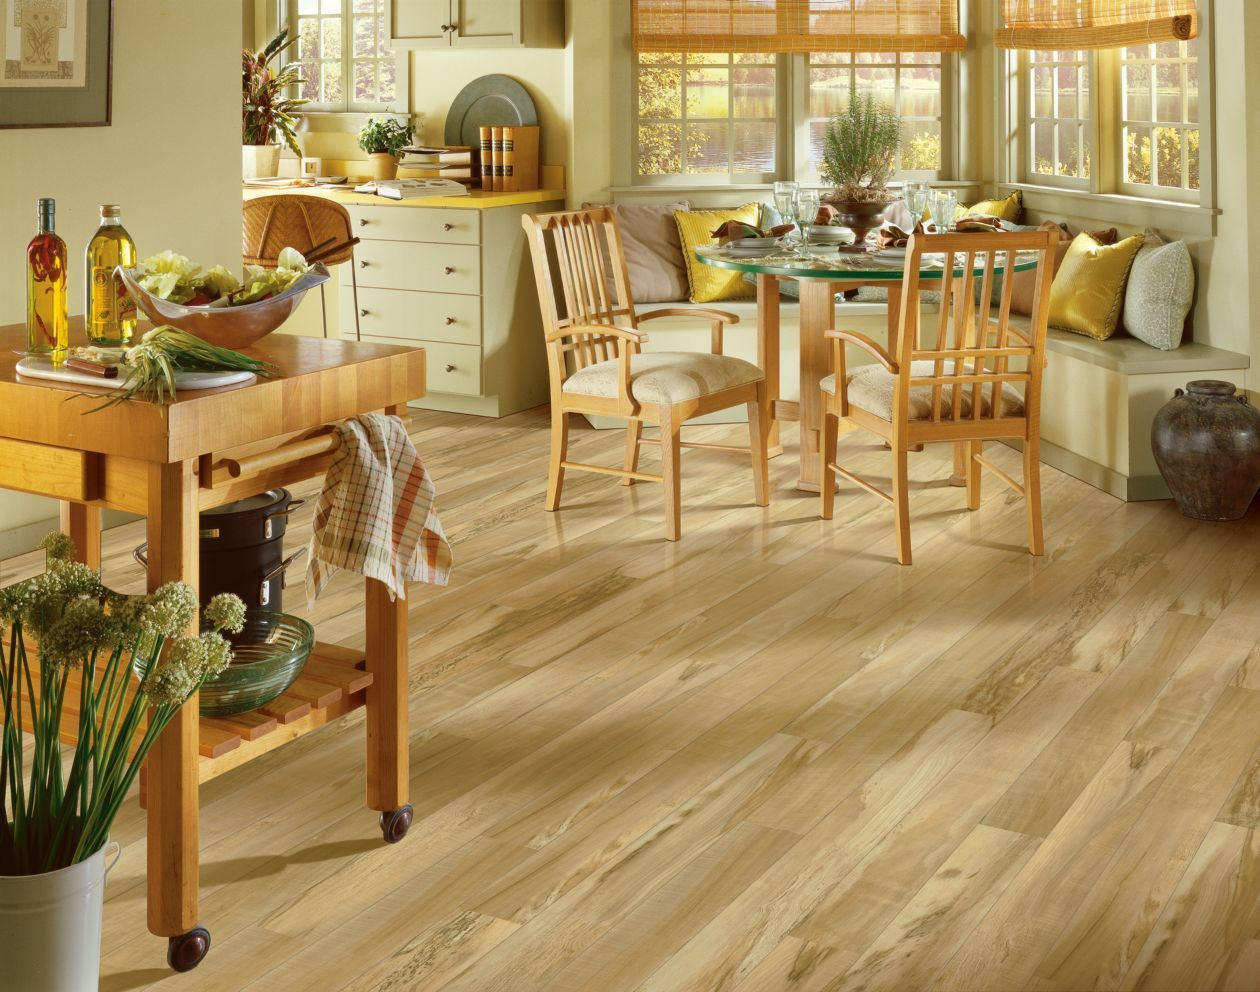 Flaxen maple 8mm laminate flooring by armstrong in 2018 - Can you use laminate flooring in a bathroom ...